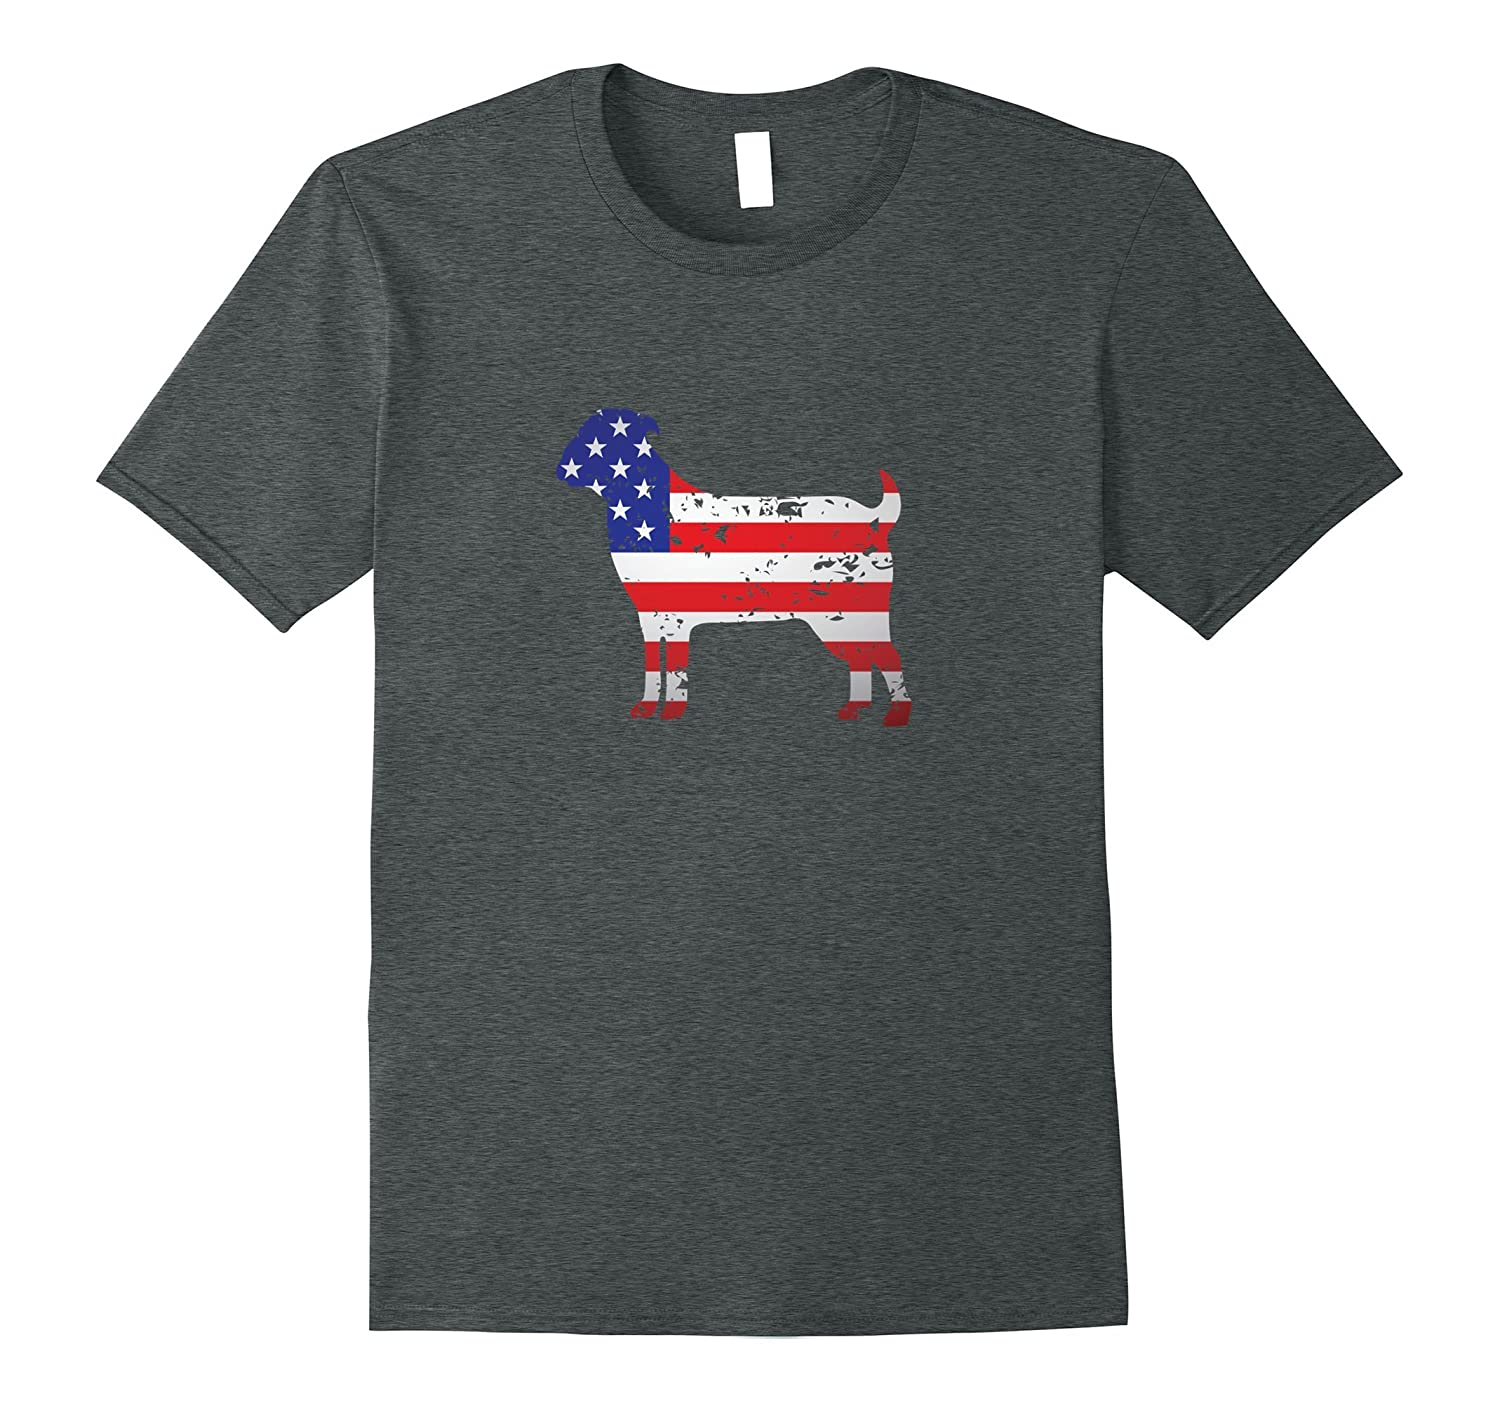 70ac3006c4 Goat T-shirt 4th of July Independence Day Shirt Funny Gift-CL – Colamaga